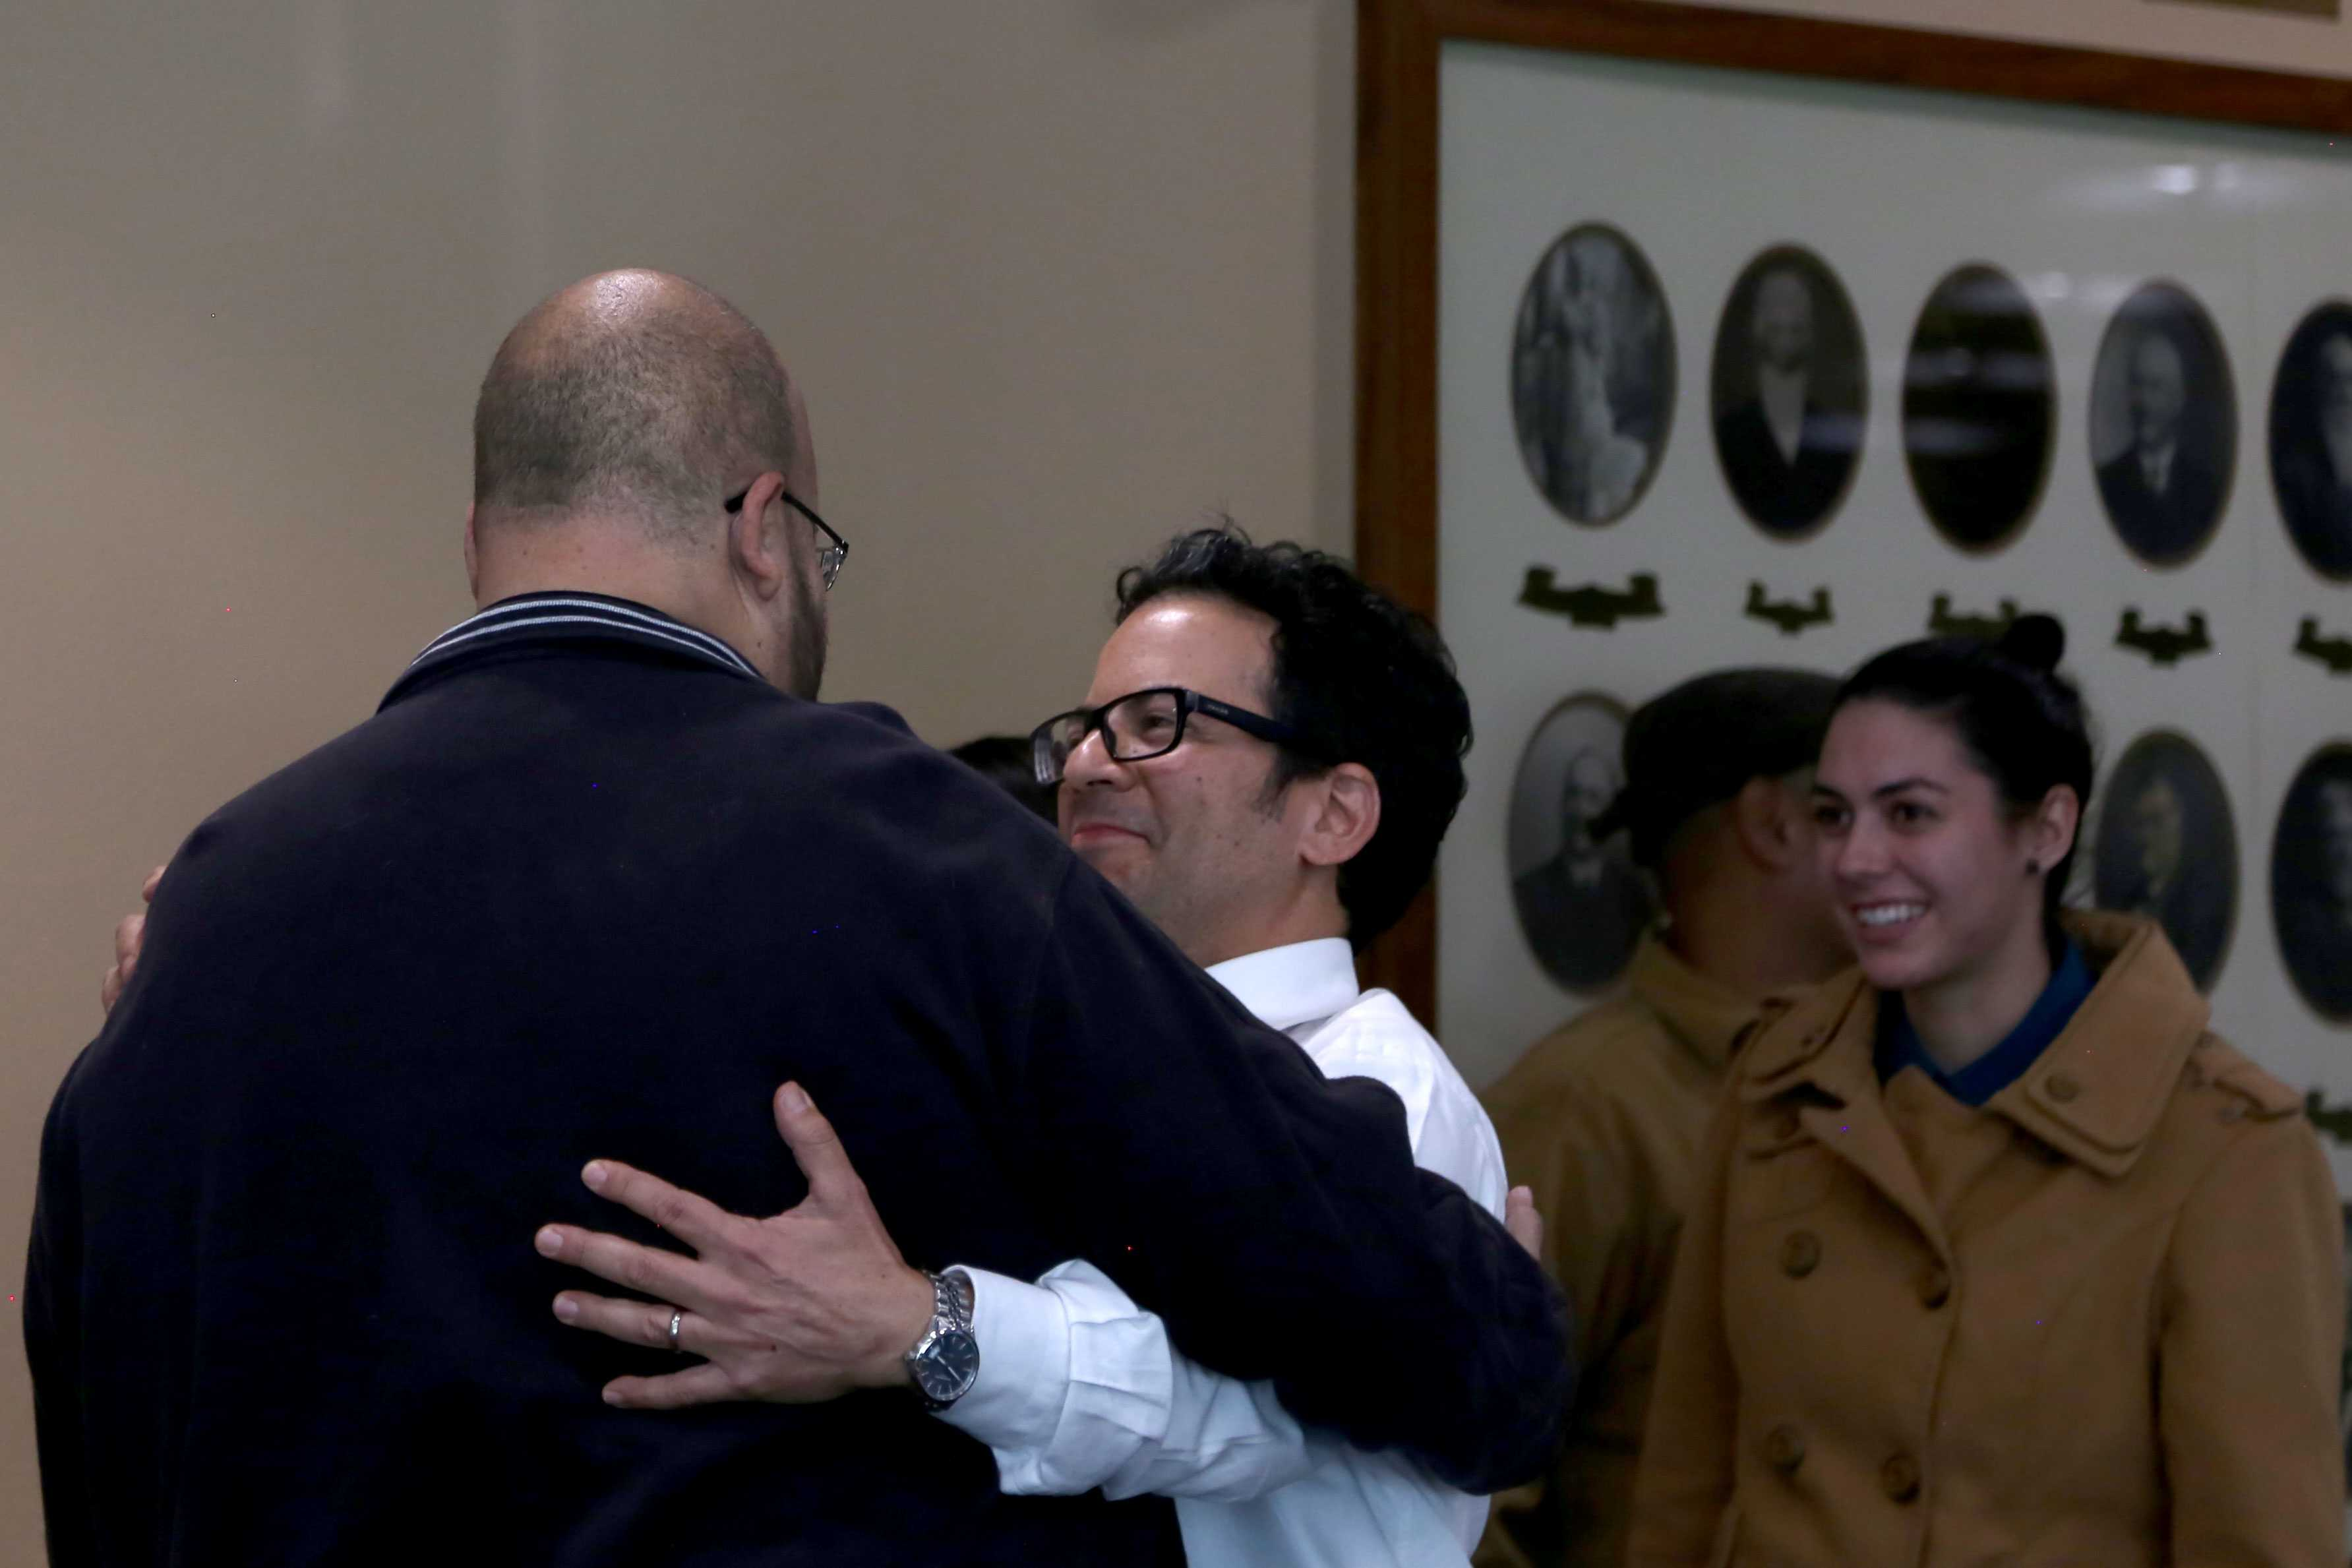 Historians+Miguel+Juarez+and+Max+Grossman+congratulate+each+other+on+their+victory+to+preserve+Duranguito.+